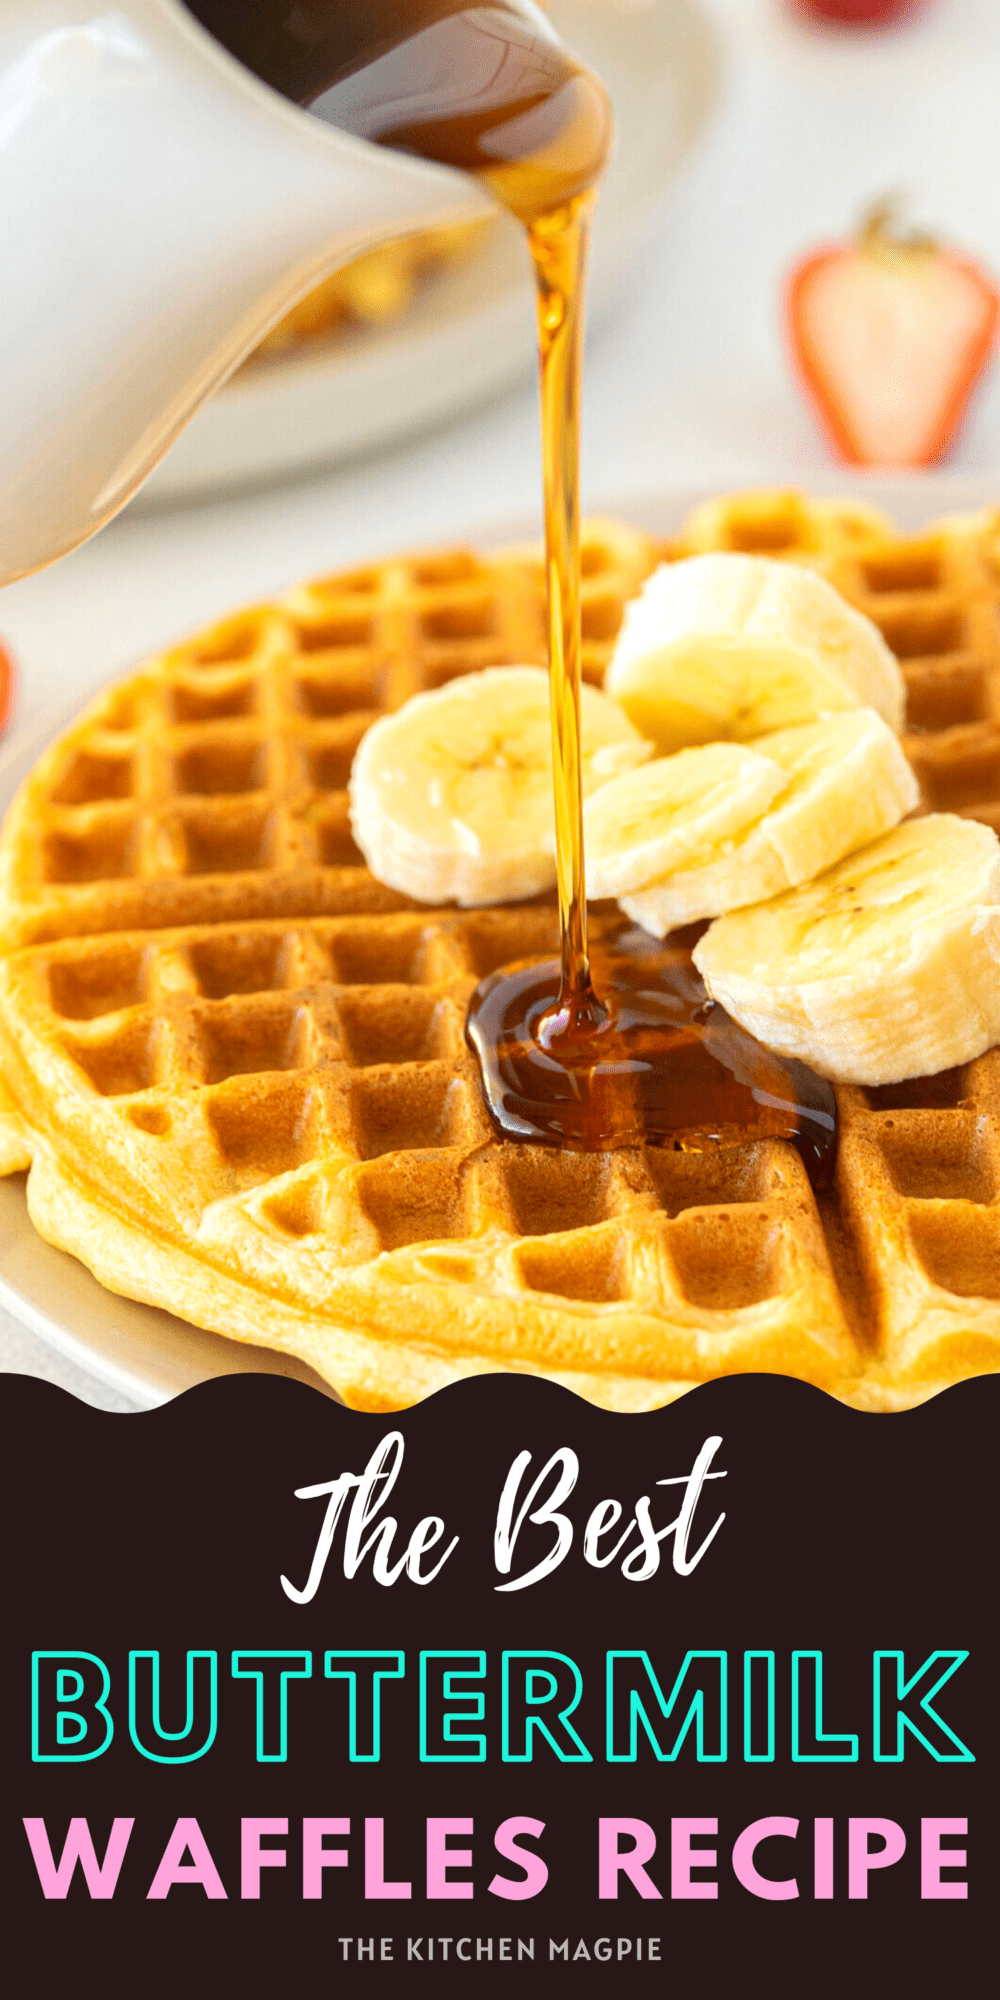 This classic buttermilk waffle recipe has stood the test of time, yielding fluffy, lightly sweetened waffles with that delicious buttermilk tang!